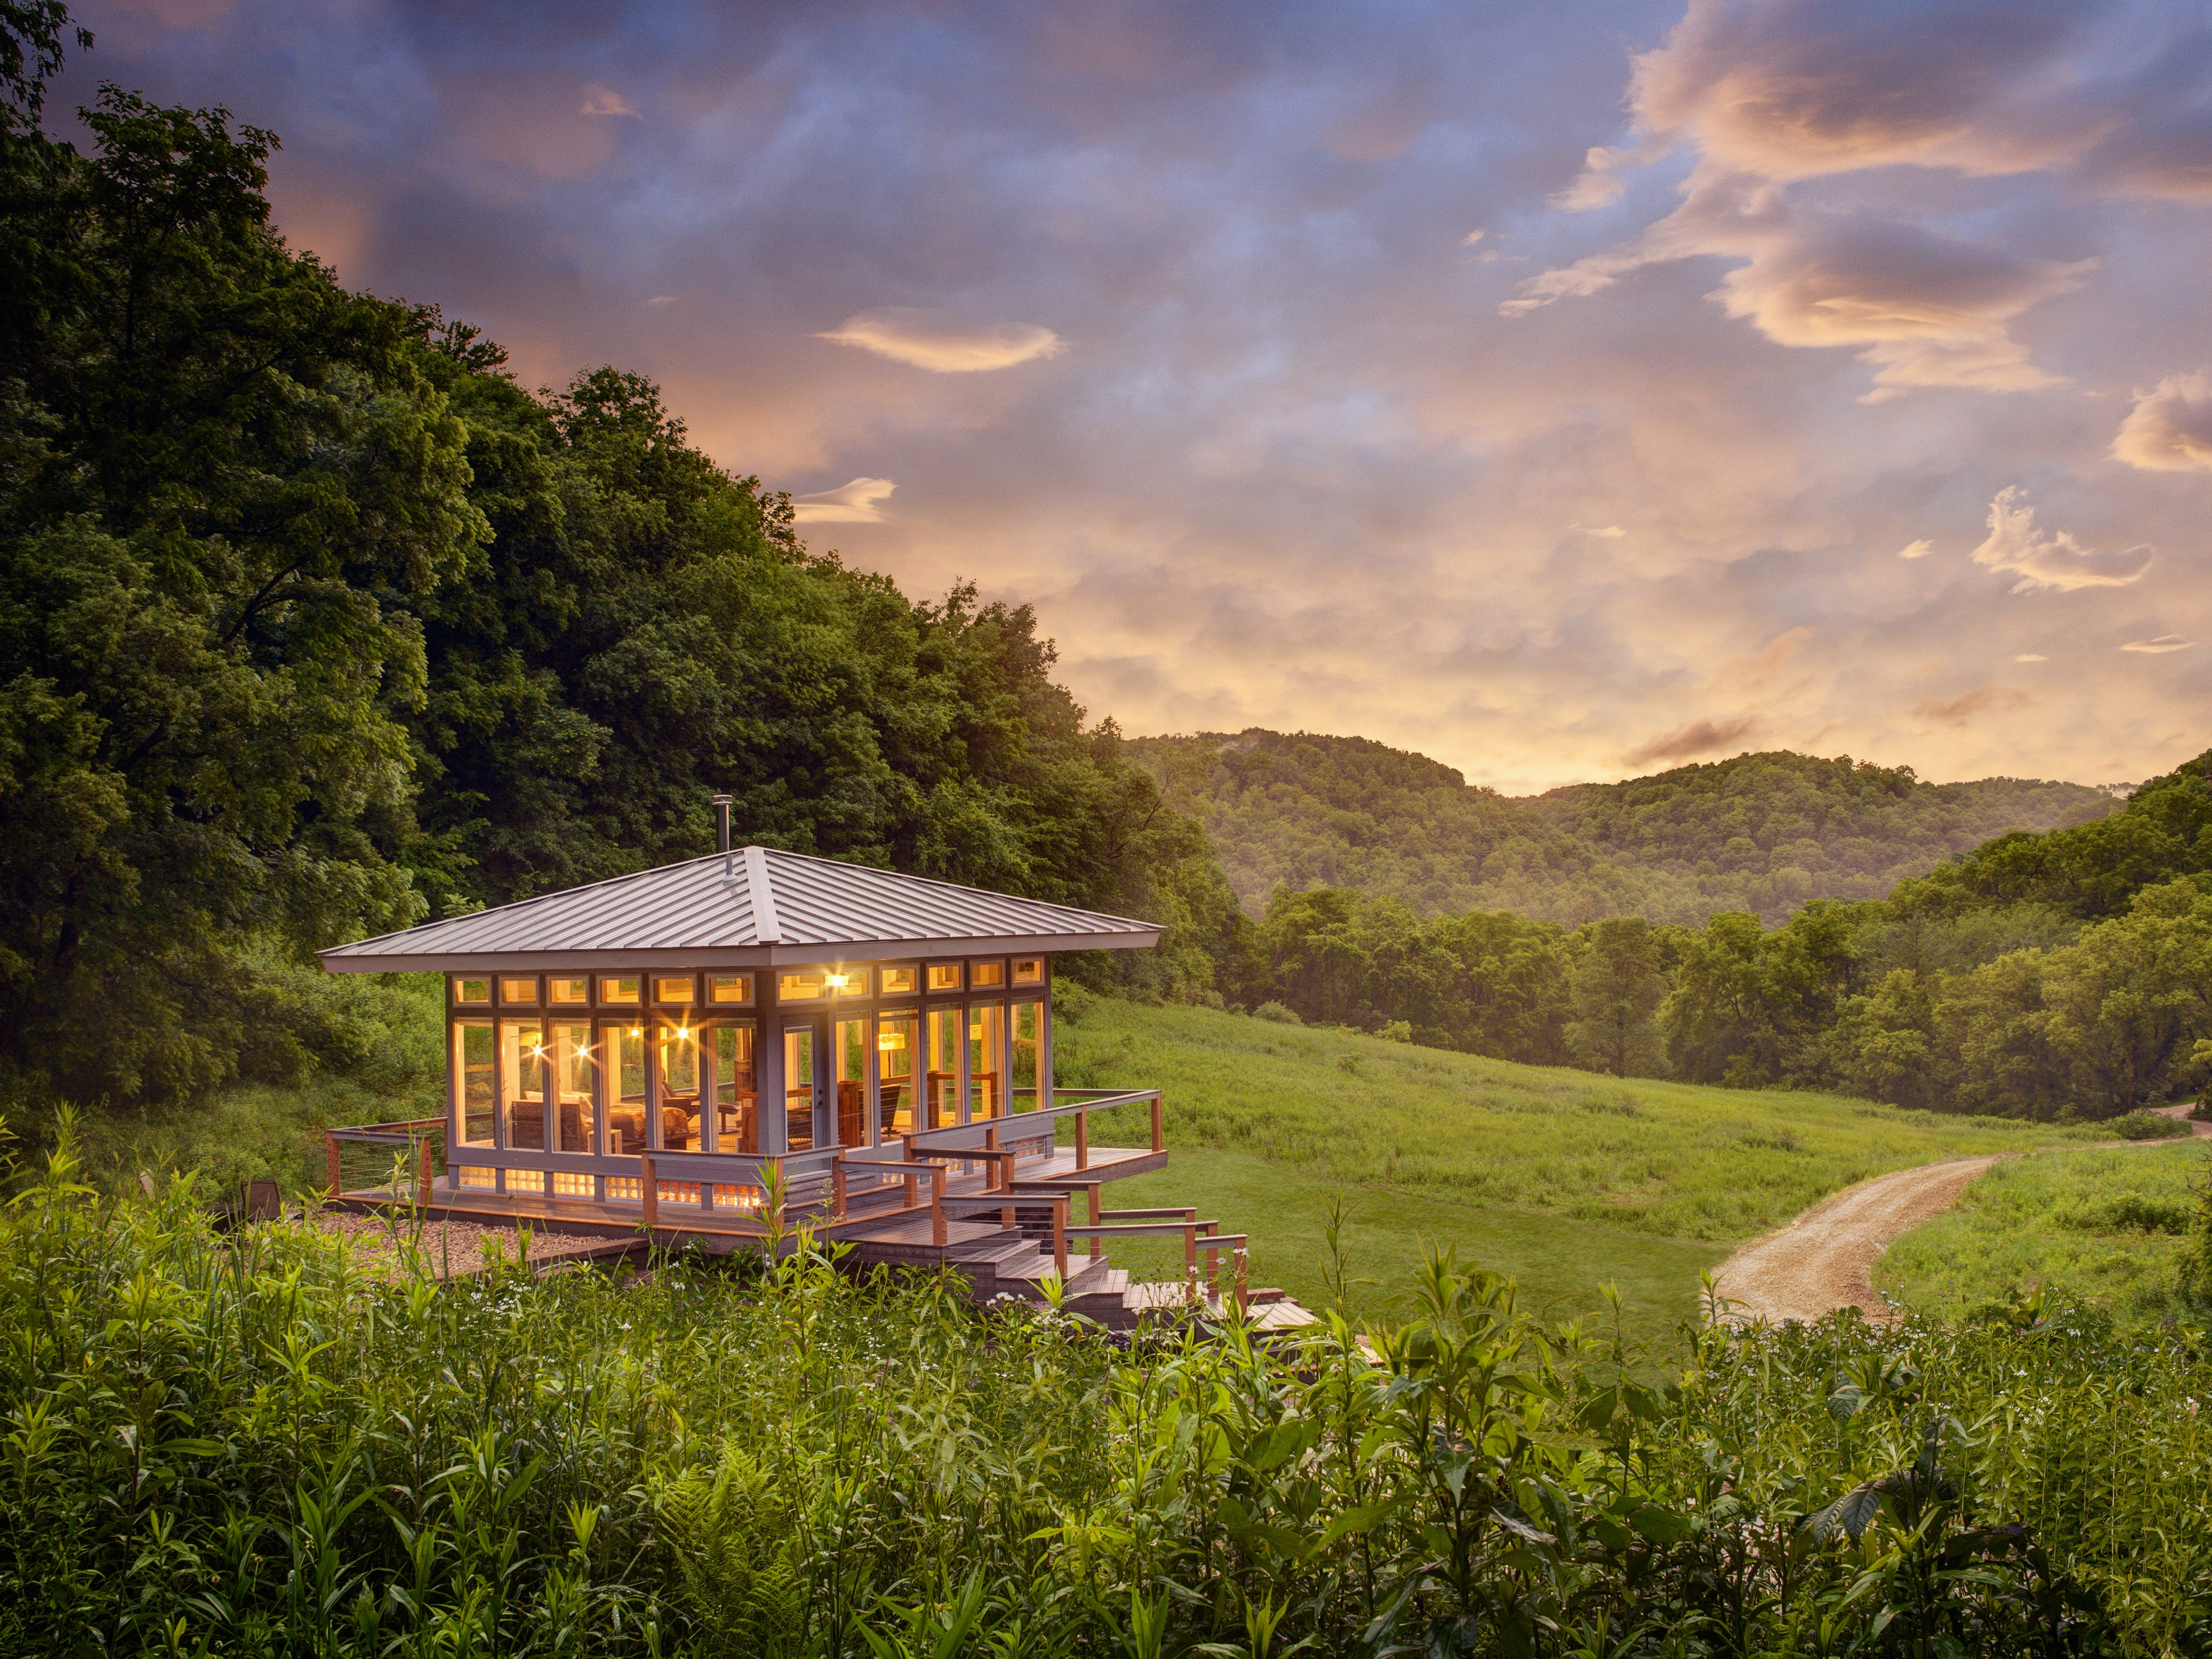 The Meadow House at Candlewood Cabins near Richland Center features four walls of glass panels for taking in views of the surrounding Driftless Area hills.